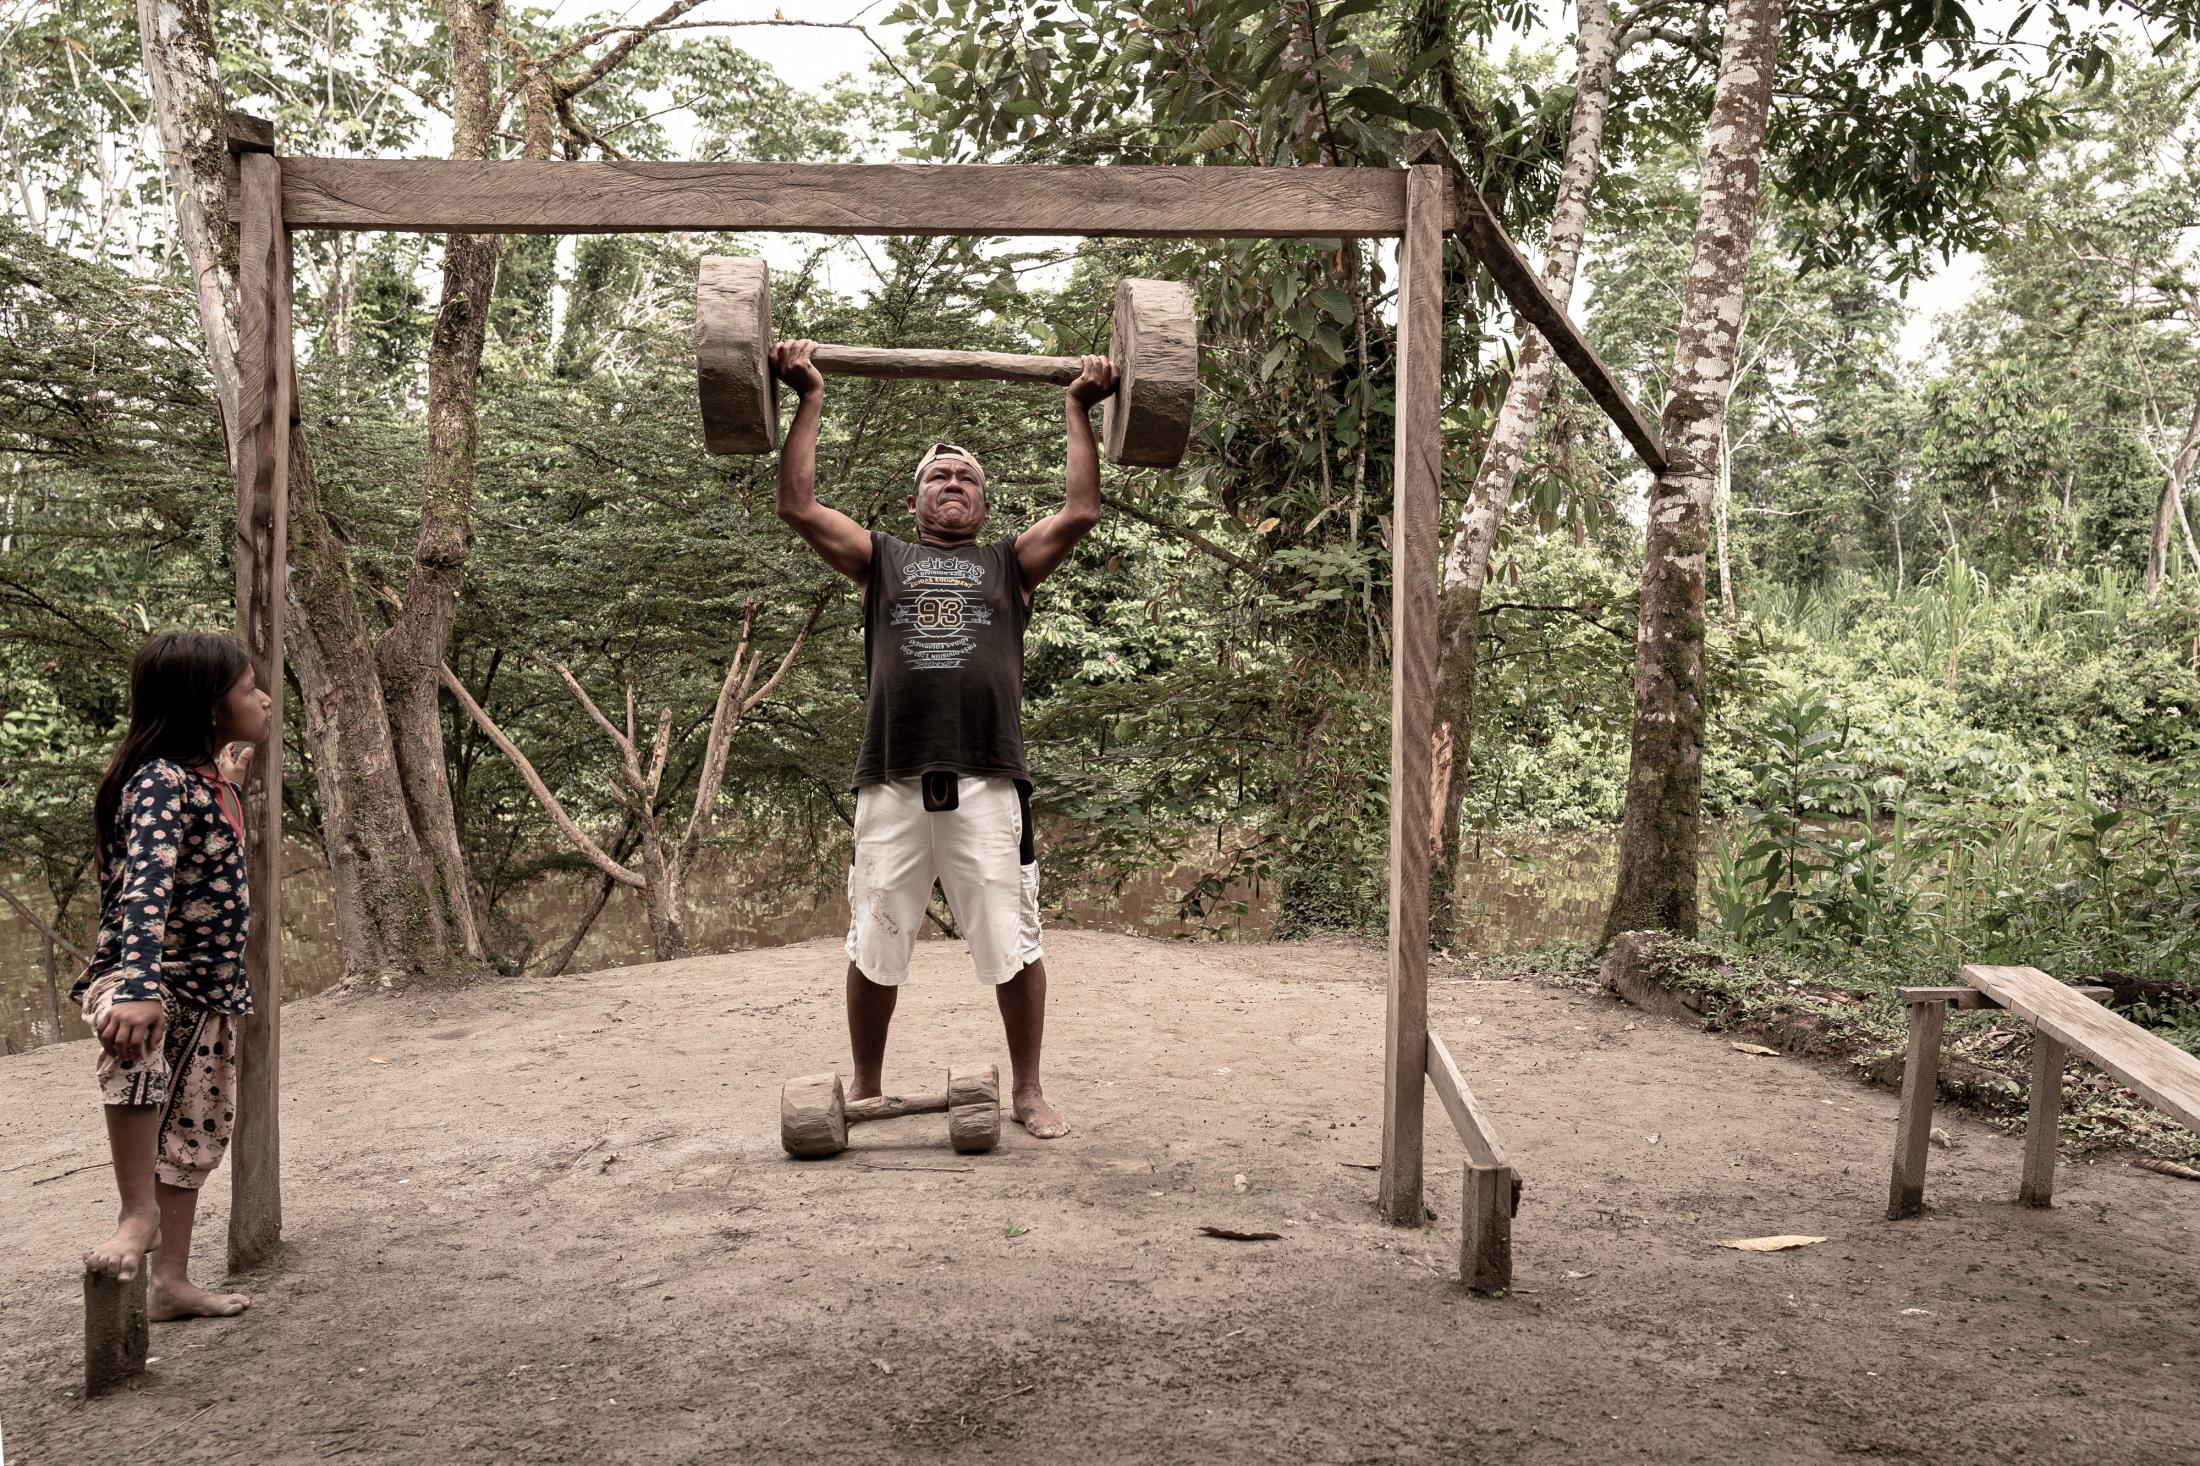 Clovis Perez, is a Wampís who helps in the coordination work of the Wampís Nation. He exercises at the gym he built, in Condorcanqui. After numerous meetings among their leaders, representatives of 27 Wampis communities, with a combined population of 15,000 people, came together in 2015. They invoked international recognition of the rights of indigenous people and on Nov. 29 declared the creation of an autonomous territorial government called the Wampis Nation to defend its territory and resources from the growing pressures of extractive industries. In a world where actions to preserve forests and combat climate change are resisted by the old ideas of new governments, wampis sow free territory.